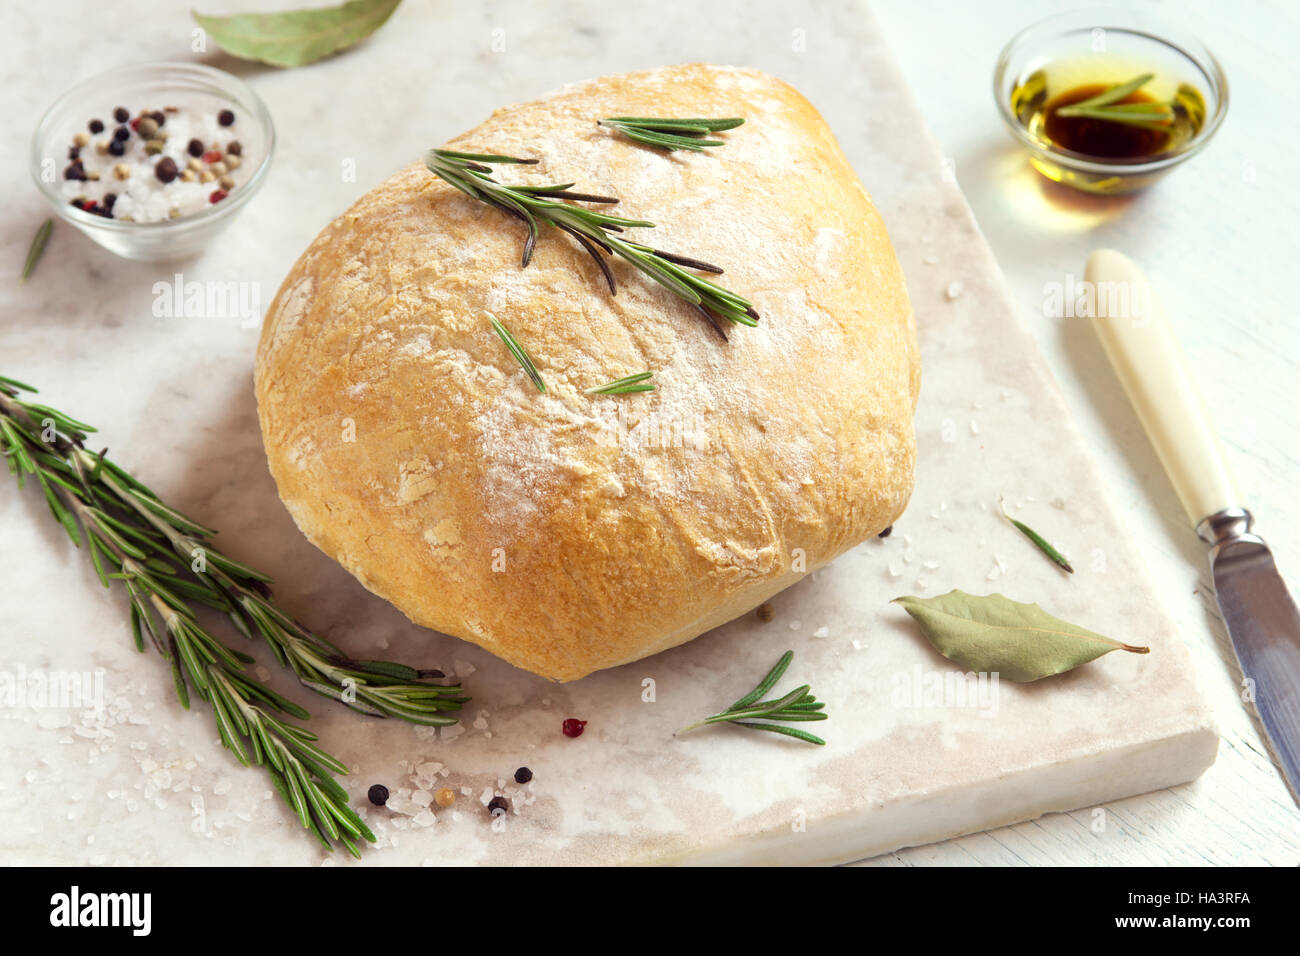 Fresh ciabatta bread with rosemary and extra virgin olive oil on rustic white background - Stock Image